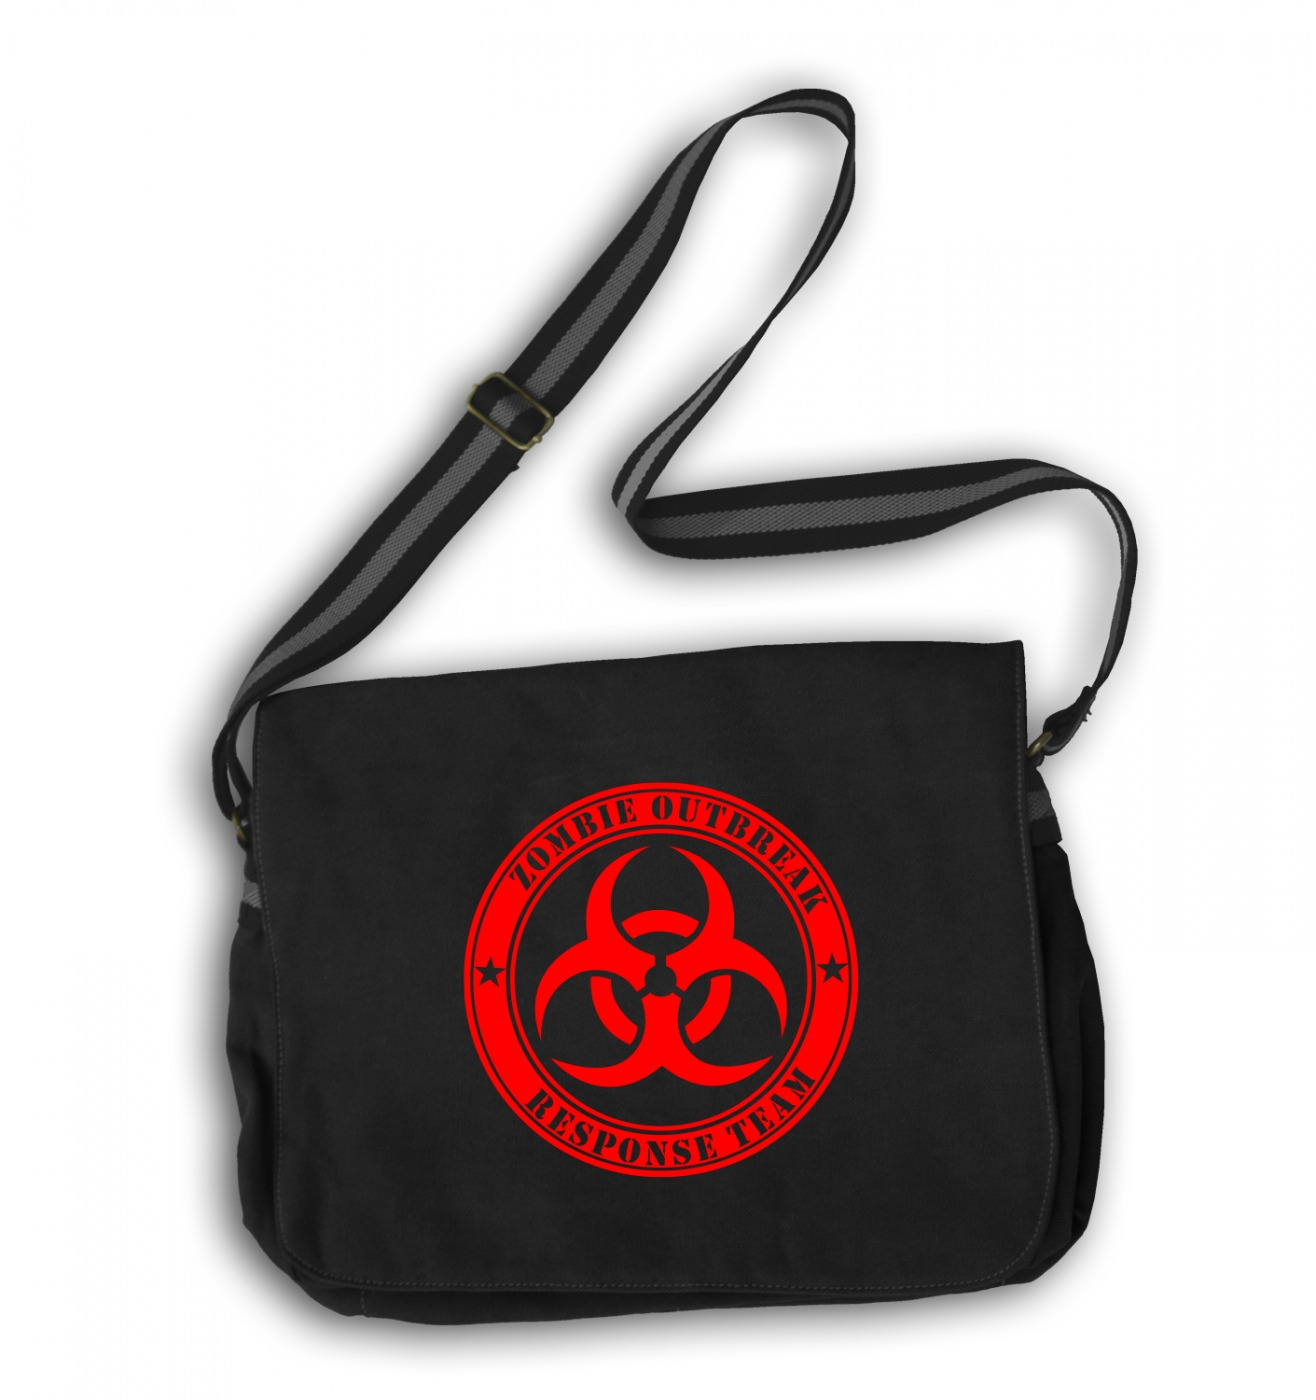 Zombie Outbreak Response Team messenger bag - Zombie school bag